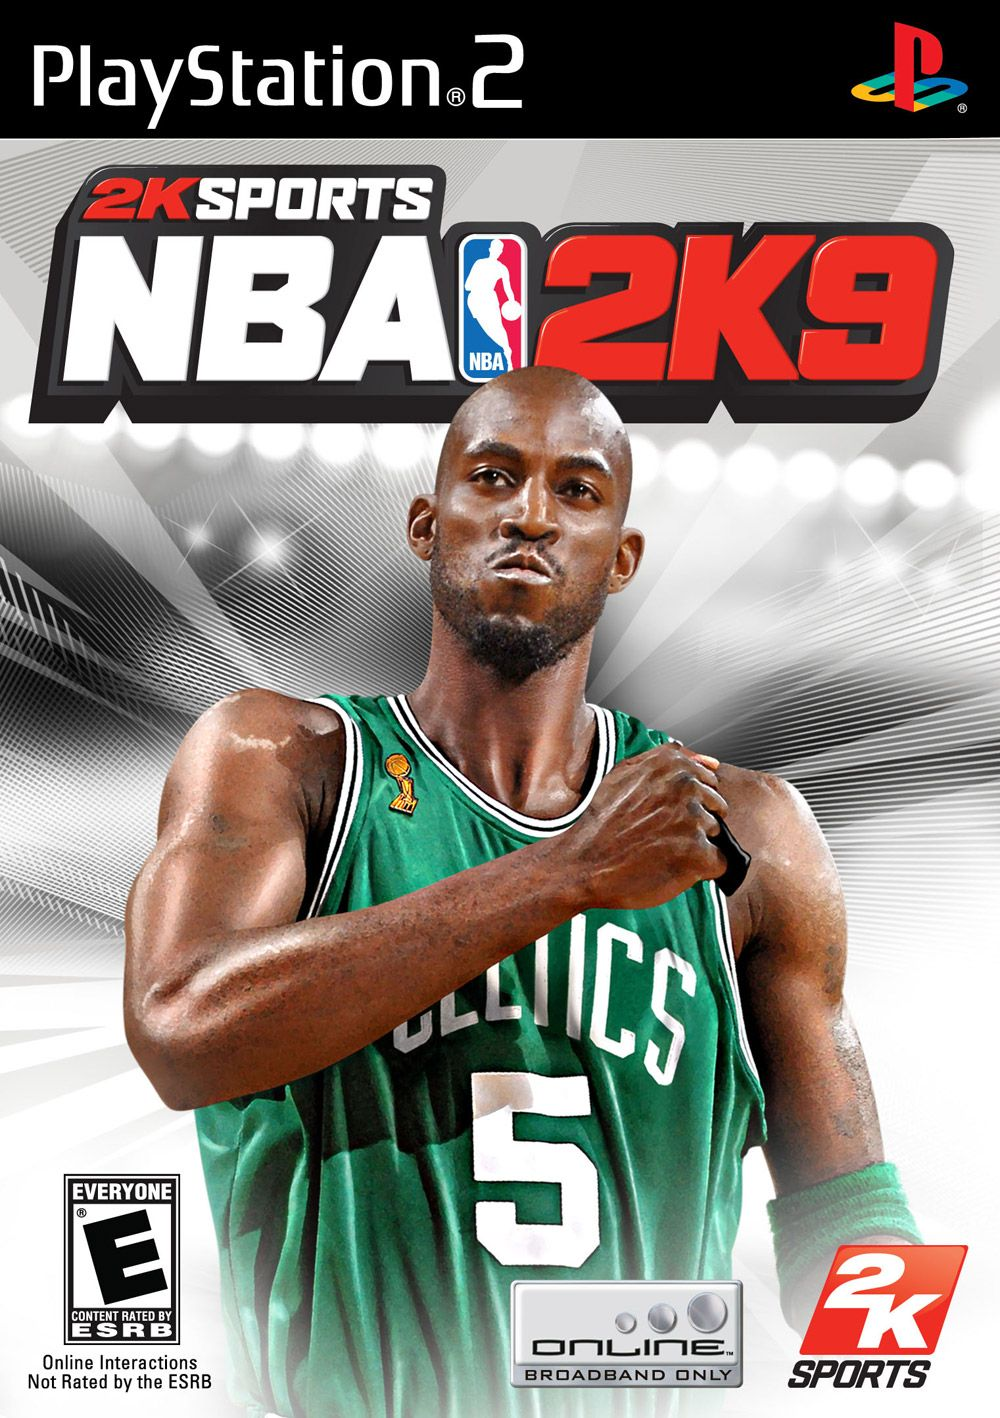 nba 2k9 Nba, Xbox 360, Playstation